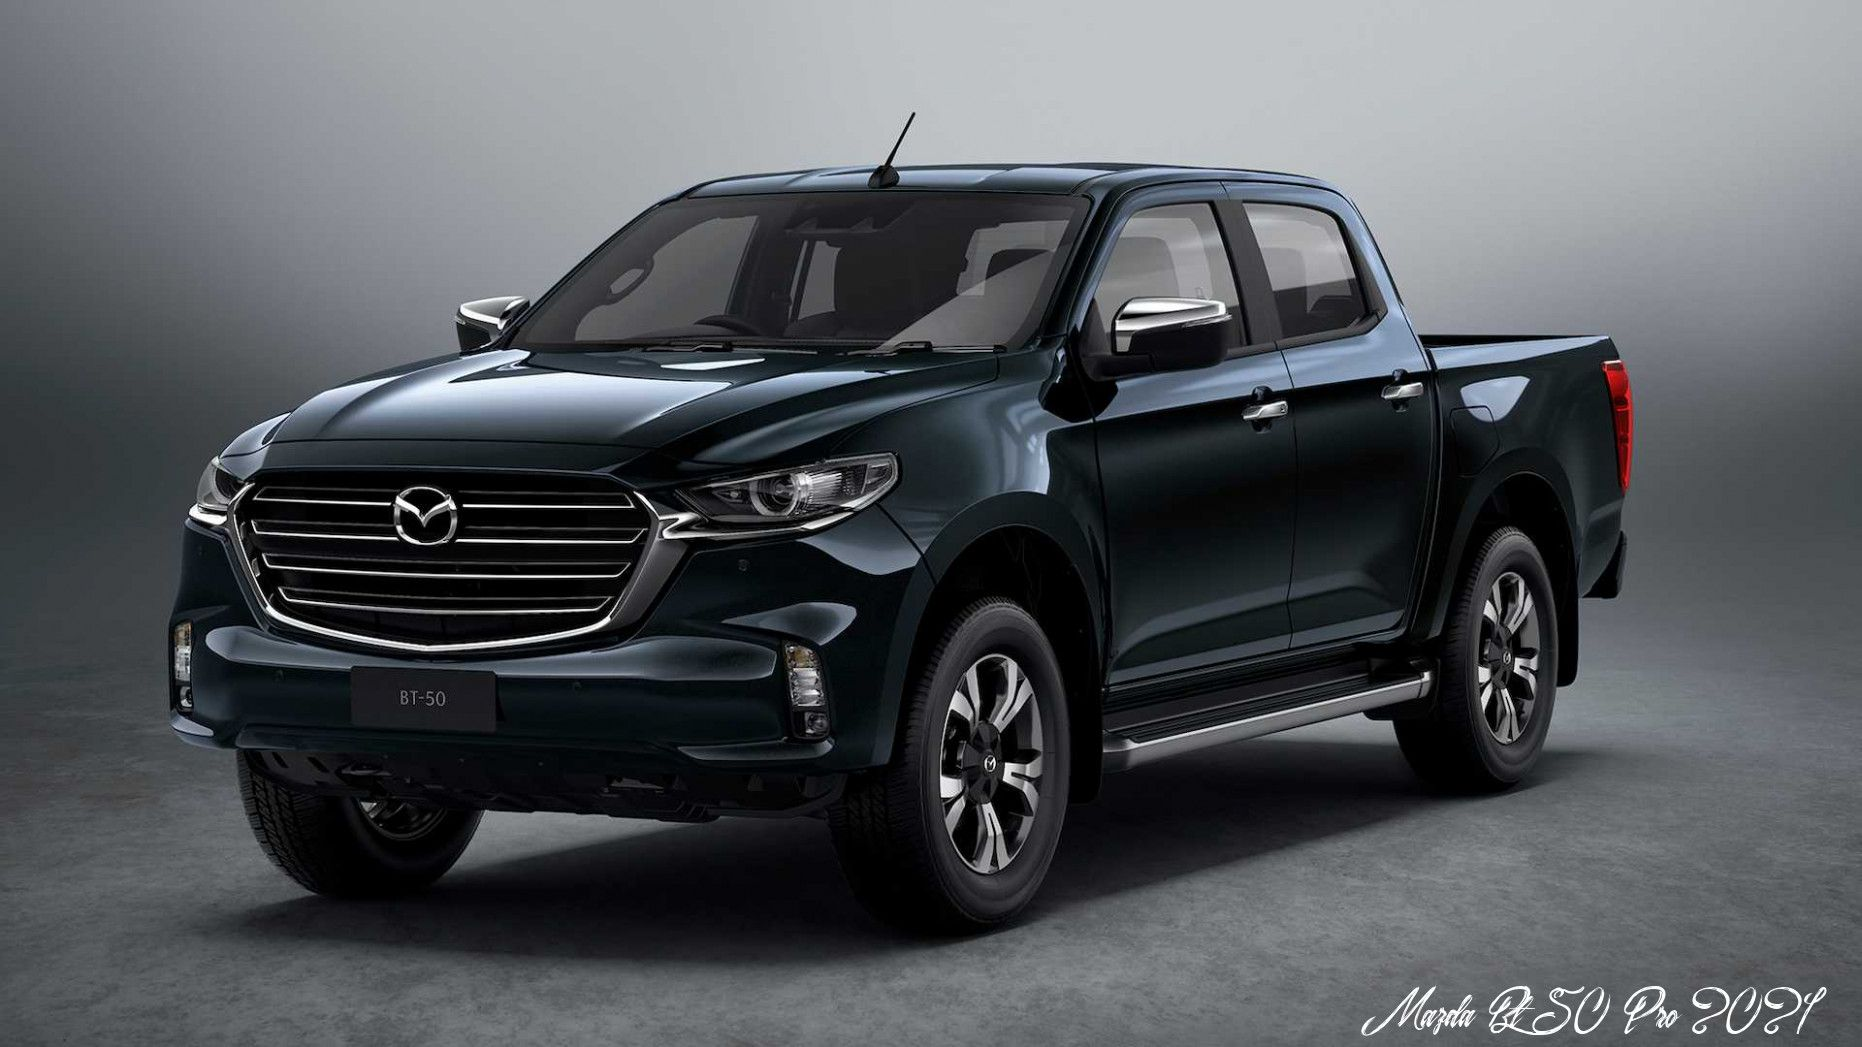 Mazda Bt 50 Pro 2021 Spy Shoot In 2020 Hot Rods Cars Muscle Mazda Lifted Ford Trucks